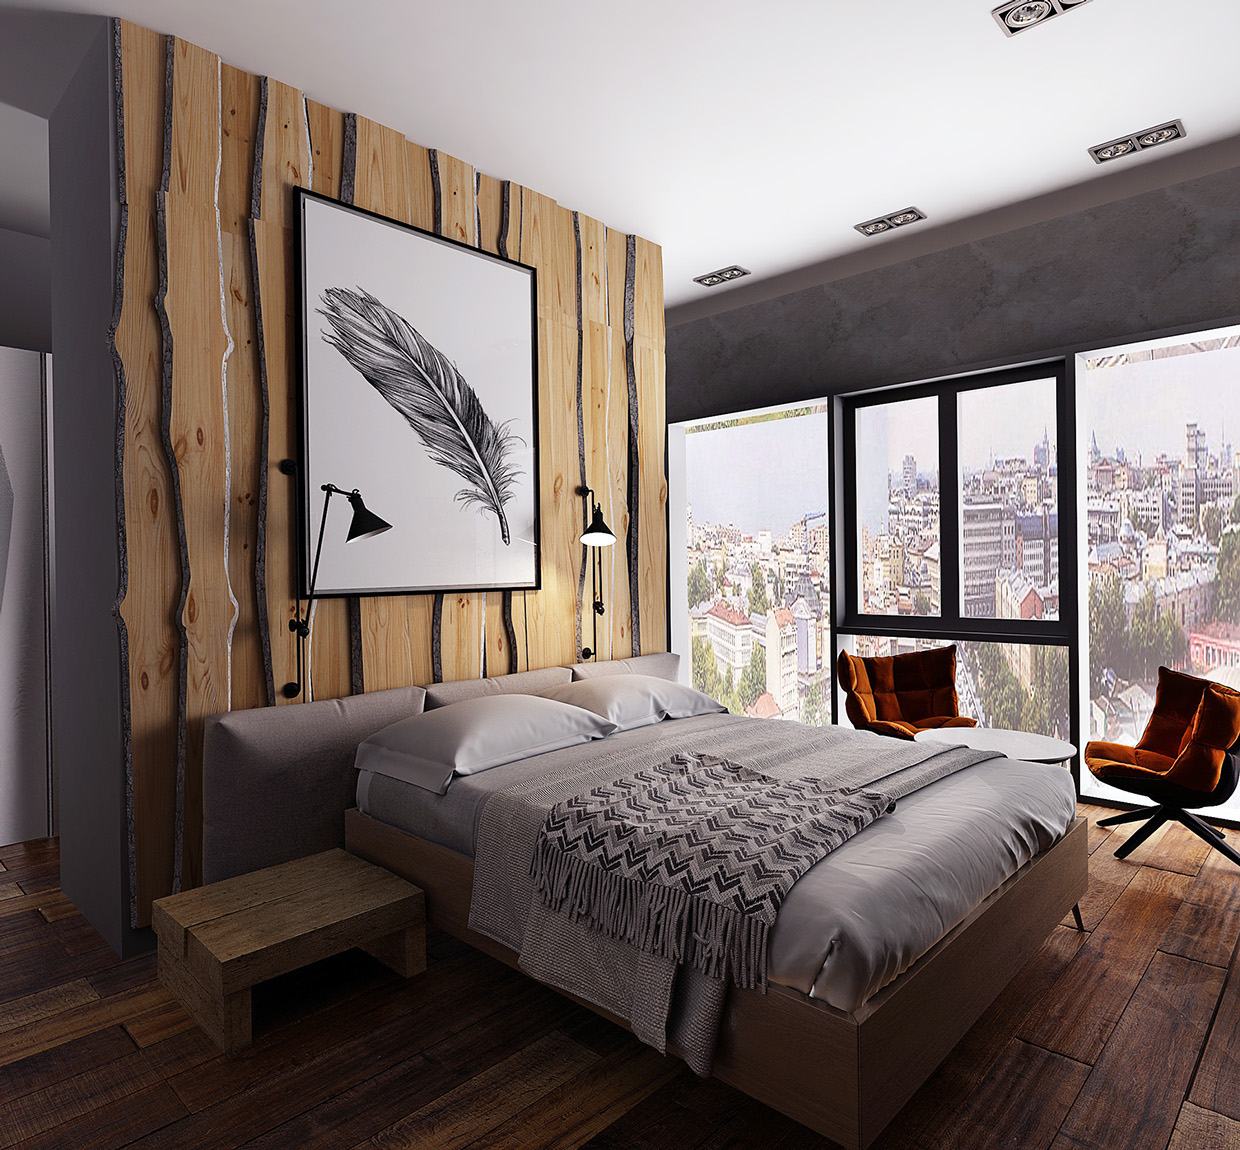 How To Arrange Awesome Bedroom Designs That Looks So Charming With A Trendy Decor Roohome